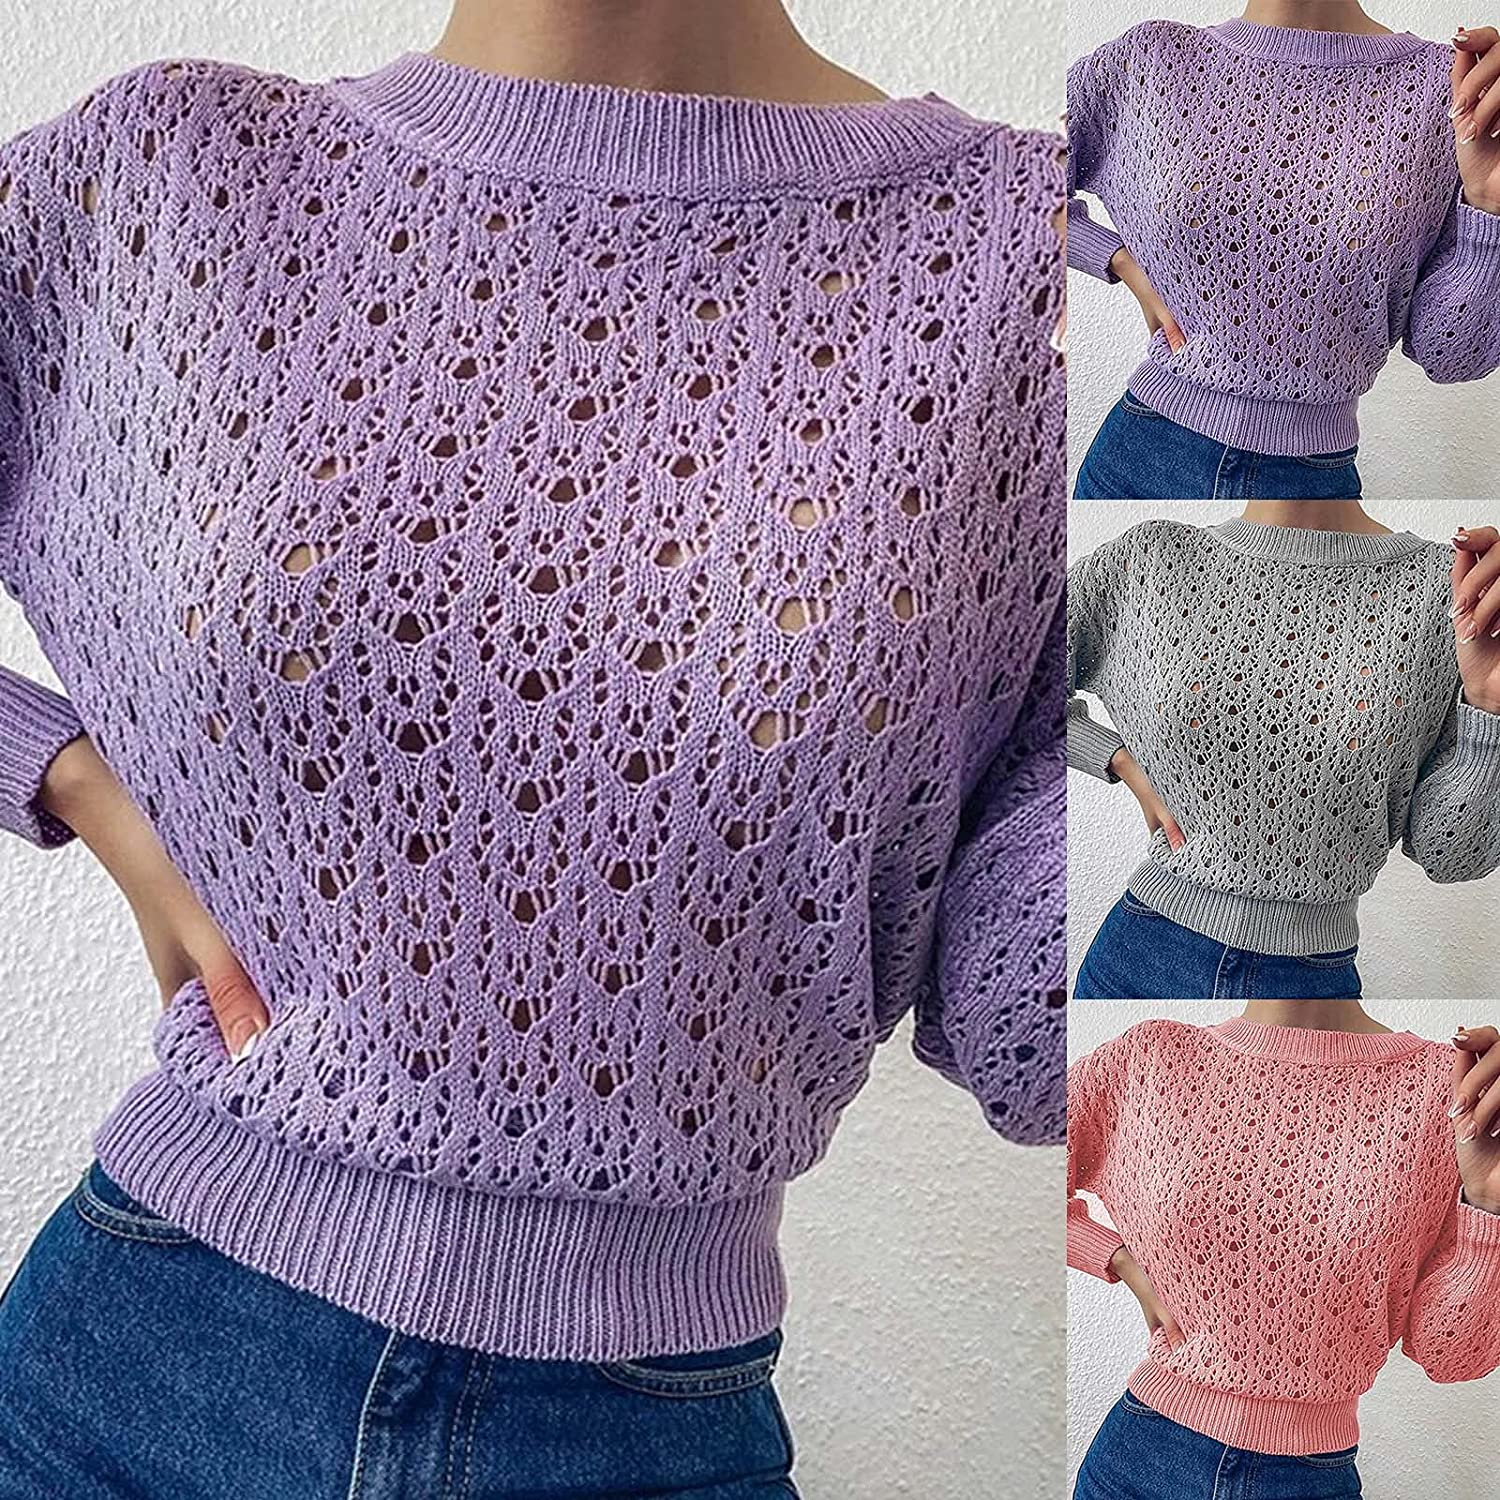 Women's Slim Knitted Sweater Long Sleeve Crew Neck Ripped Pullover Sweaters Crop Top Knit Jumper Tops Sexy Hollow Out